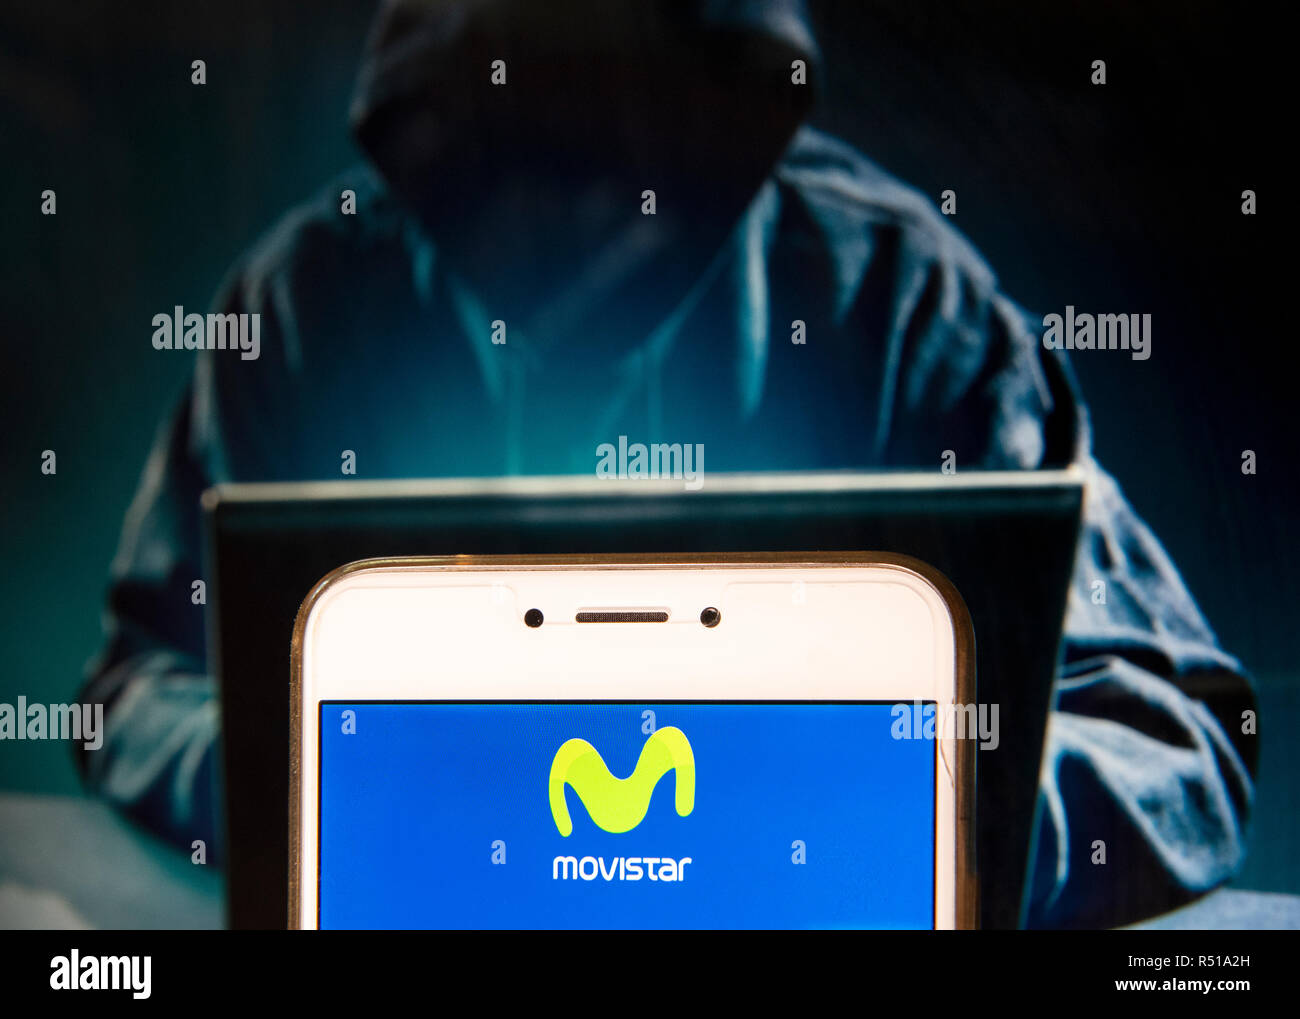 Spanish telecommunications brand owned by Telefonica and largest mobile phone operator, Movistar, logo is seen on an Android mobile device with a figure of hacker in the background. - Stock Image